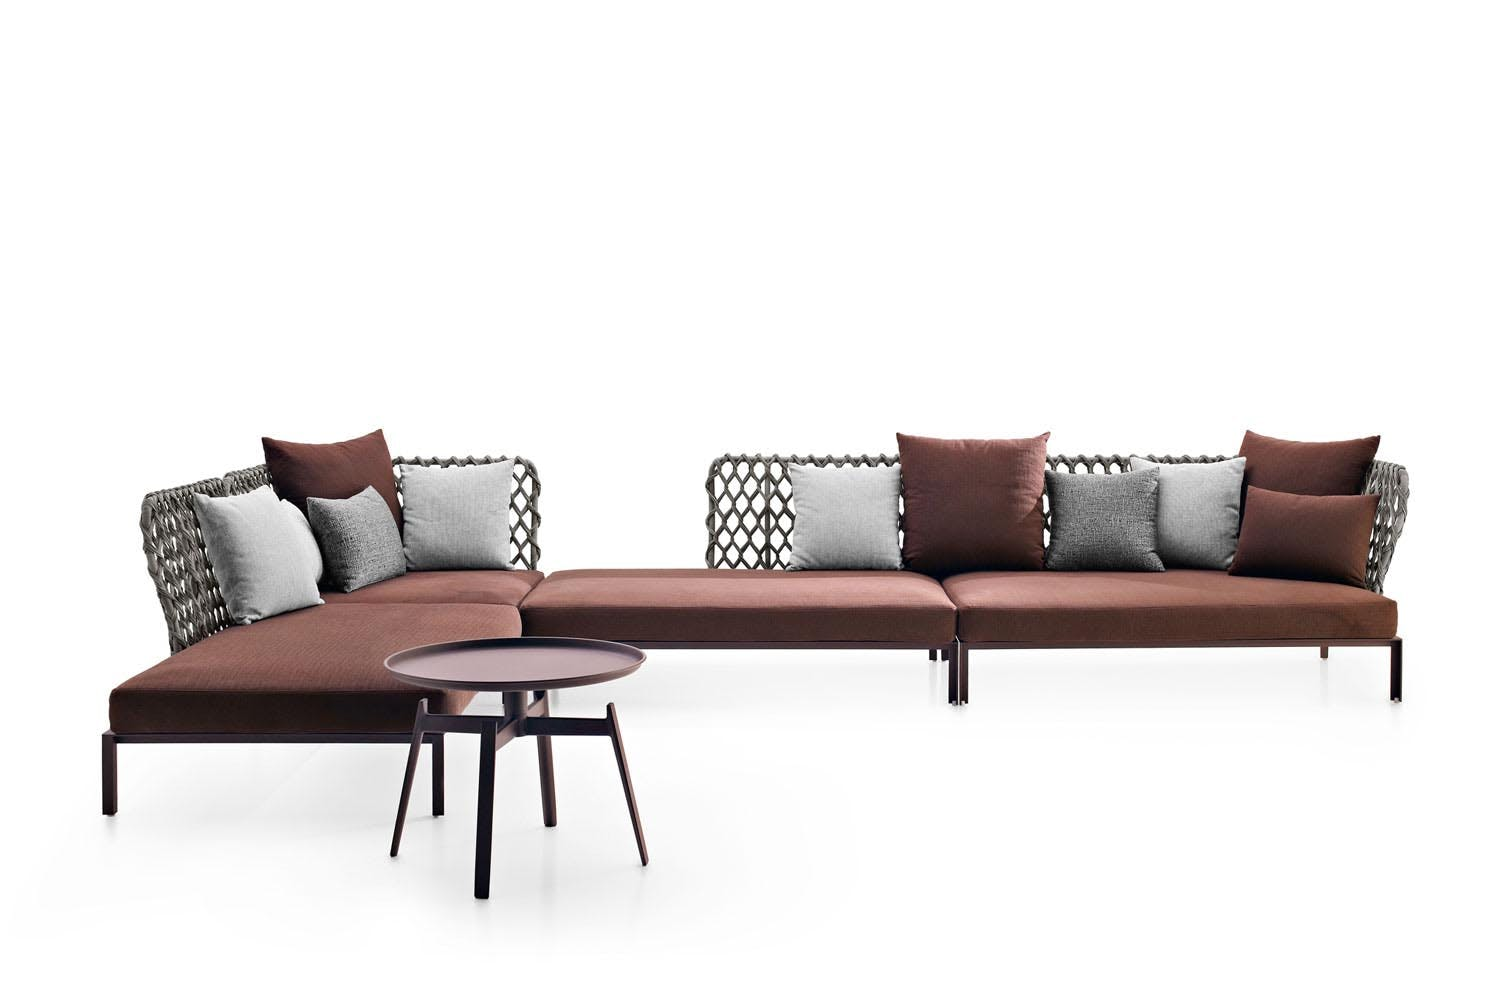 Ravel Sofa By Patricia Urquiola For B B Italia Space Furniture